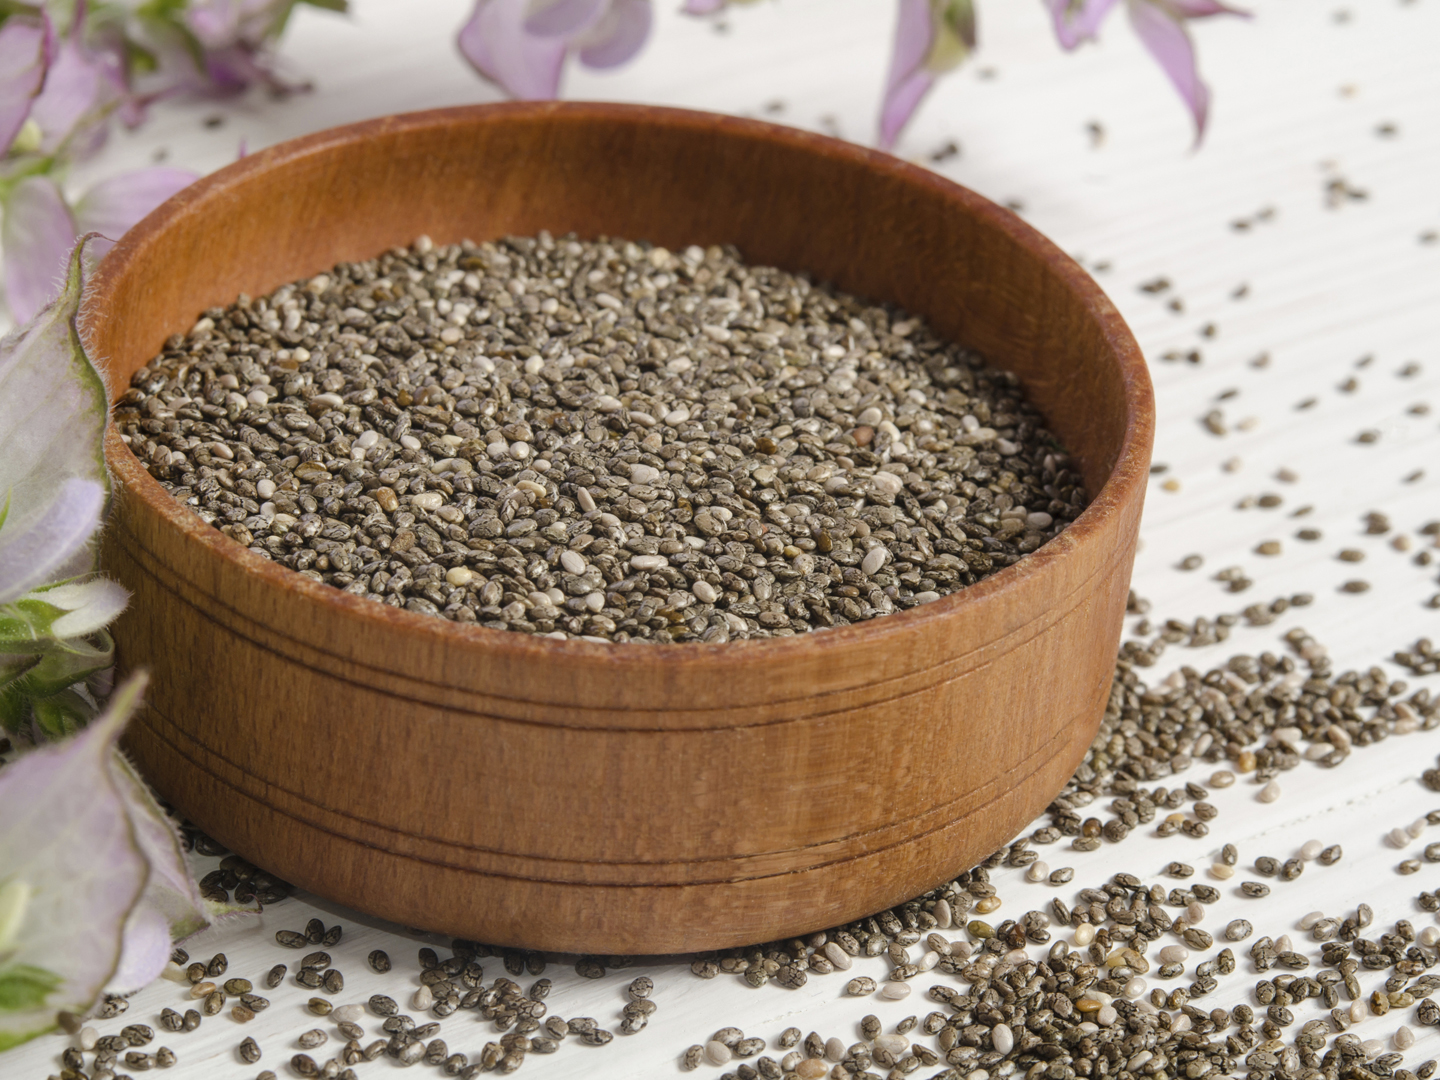 Can Chia Help With Weight Loss? | Chia Seeds Nutrition